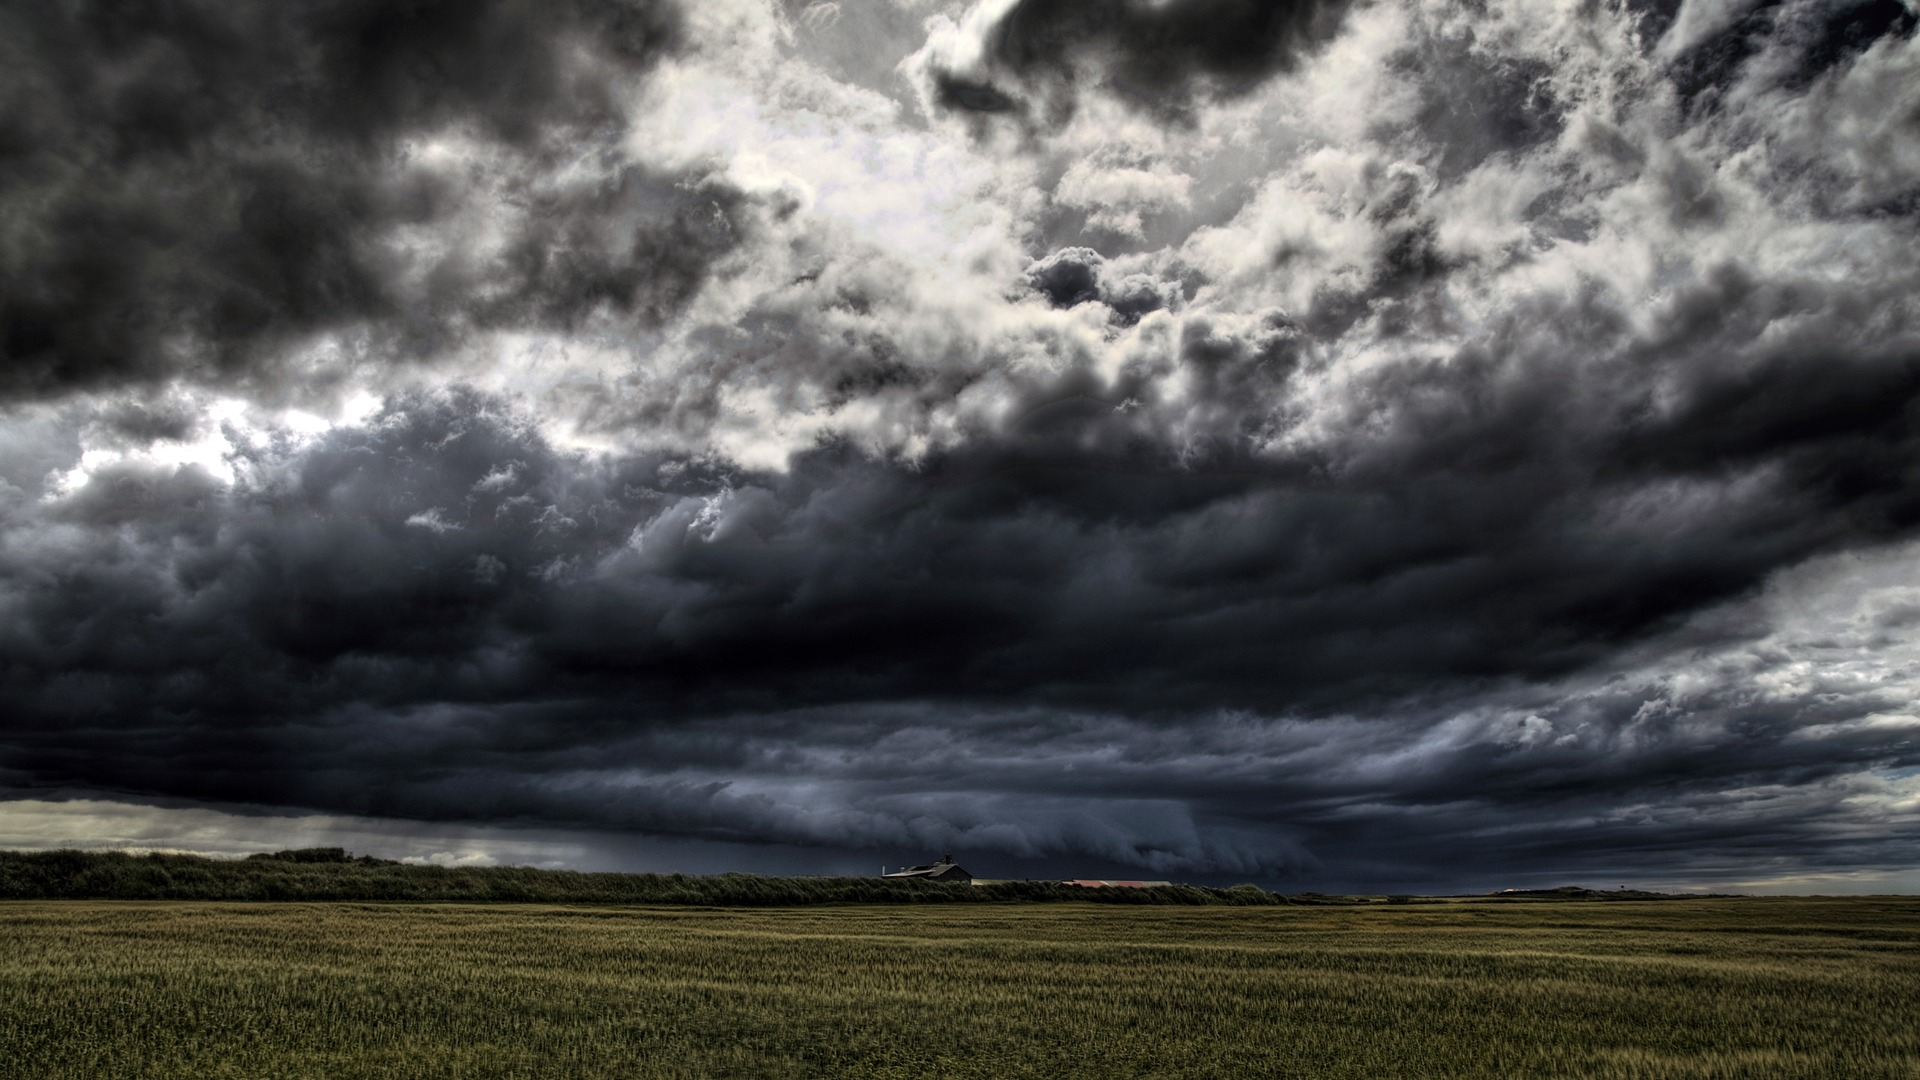 Free Storm Clouds Wallpaper 29548 1680x1050 px